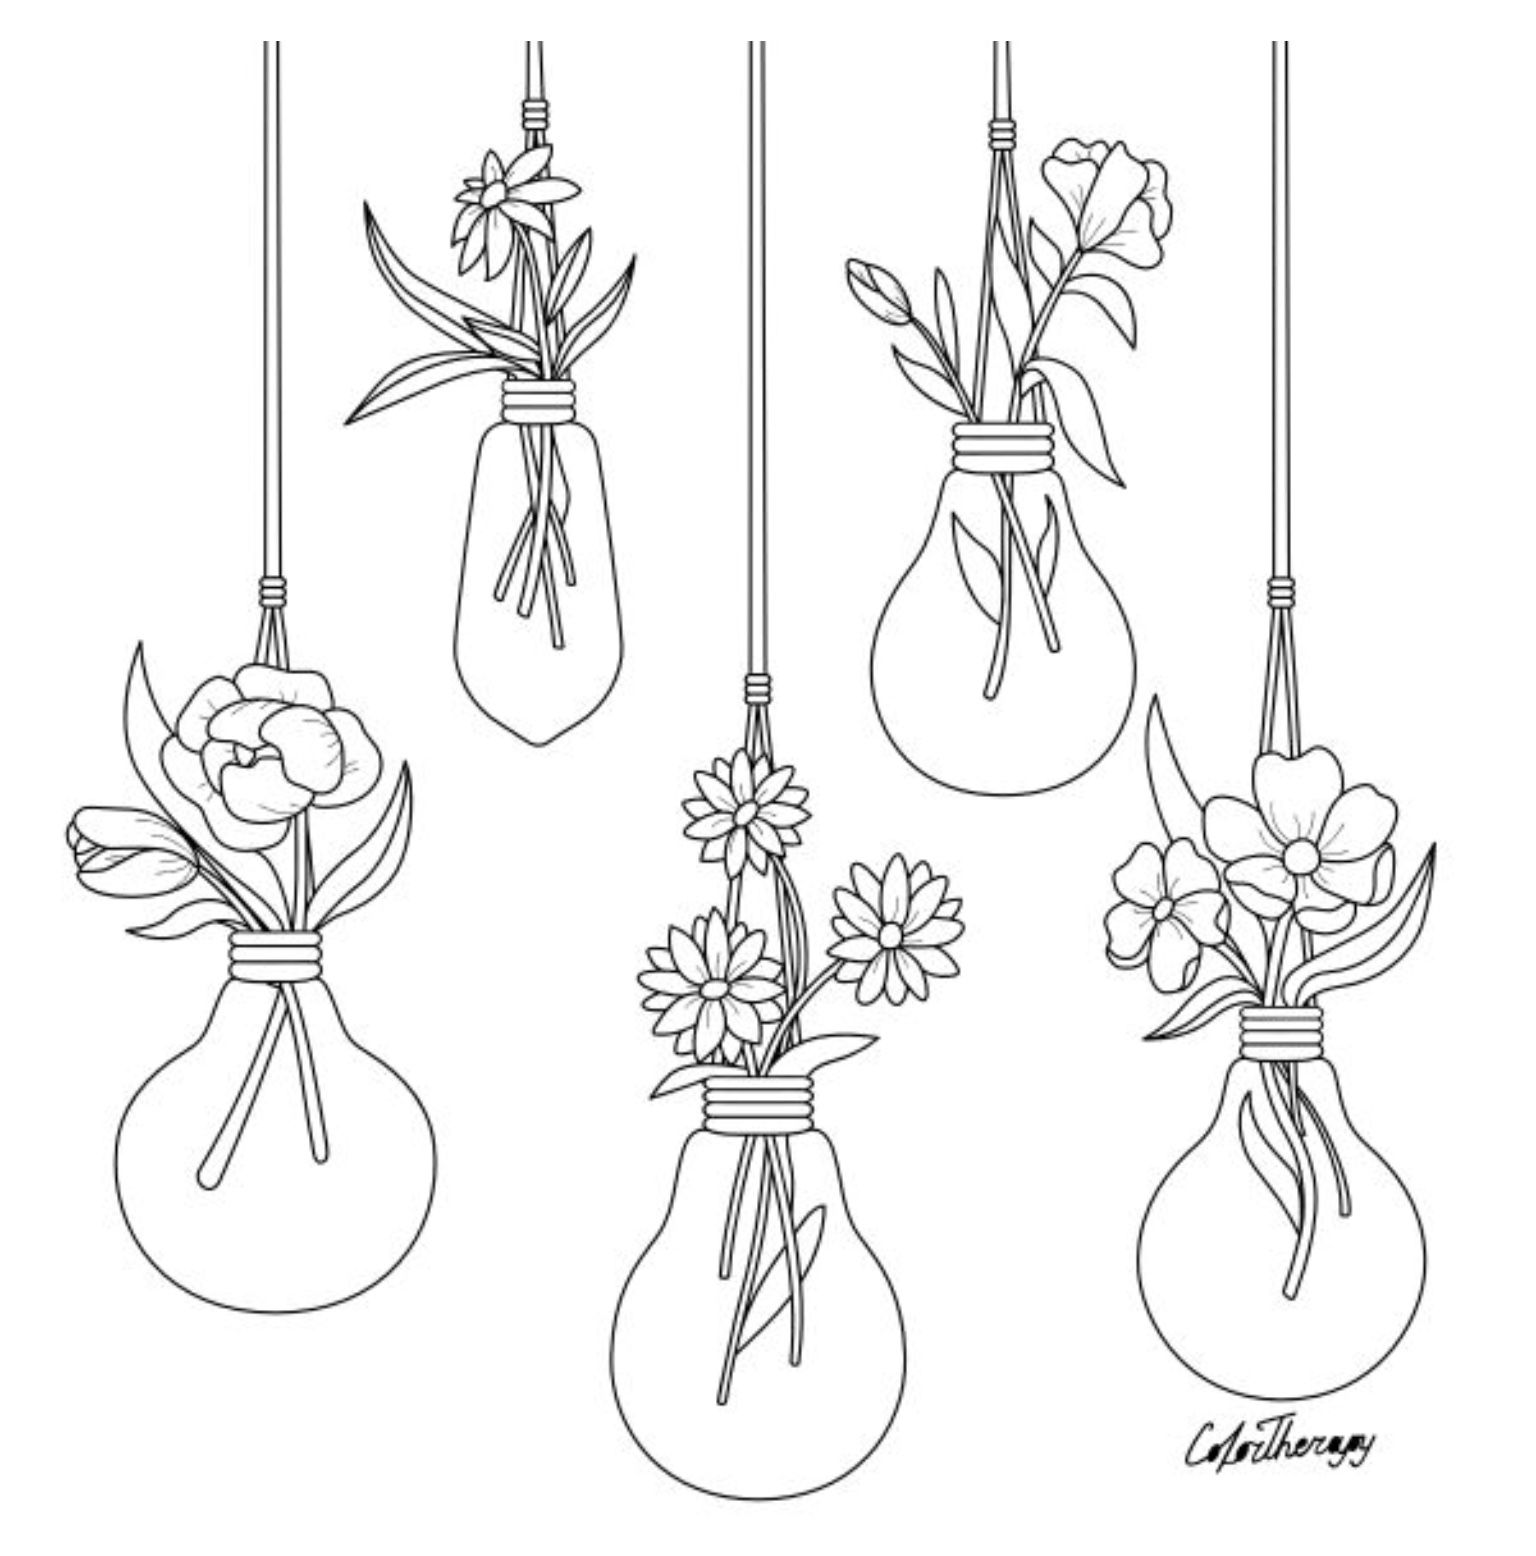 The Sneakpeek For The Next Gift Of The Day Tomorrow Do You Like This One Flowers Lightbulbs Don T Flower Doodles Flower Drawing Doodle Art